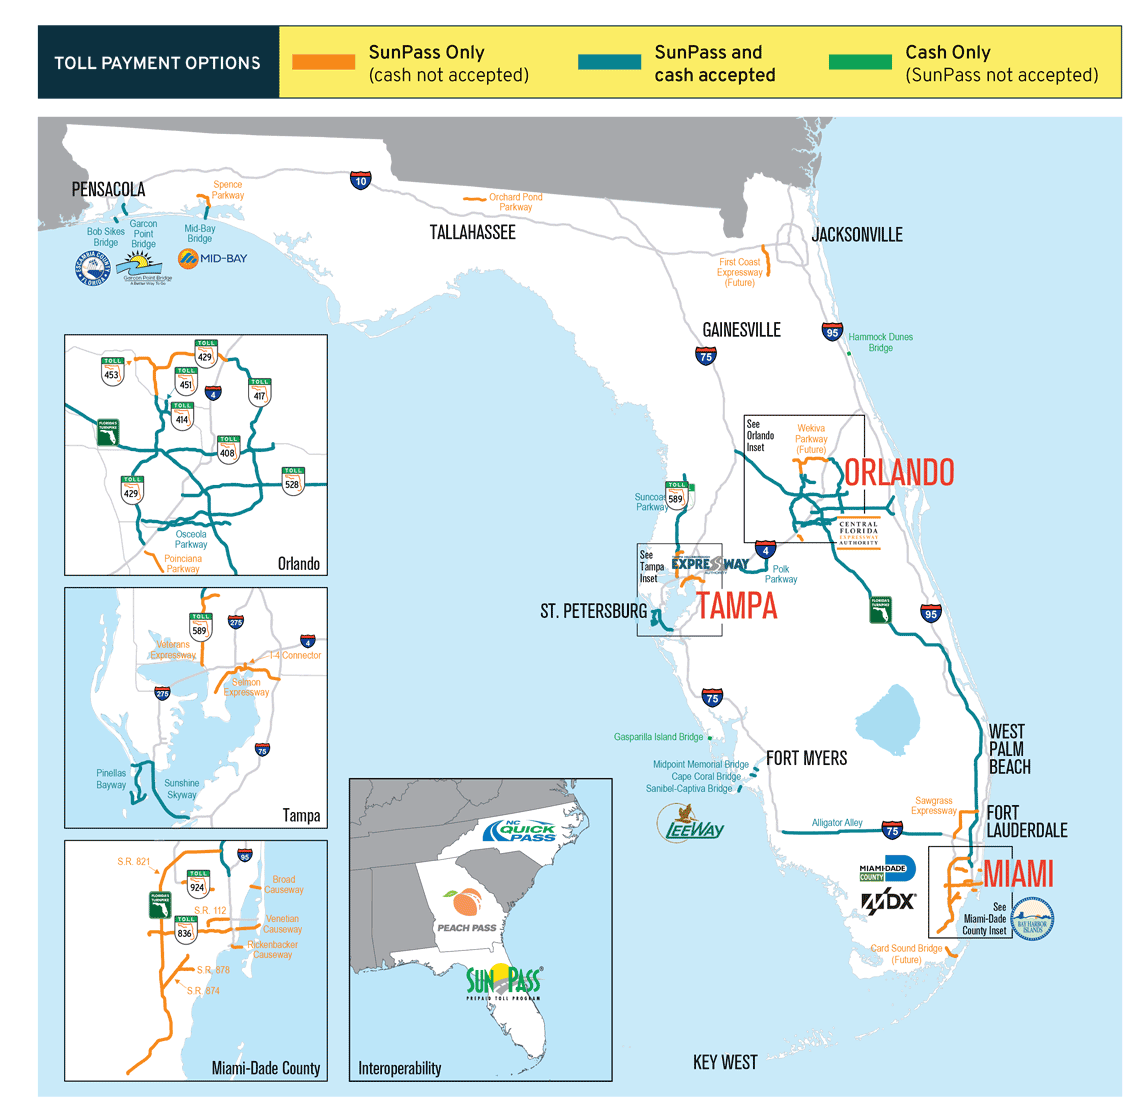 Florida toll map